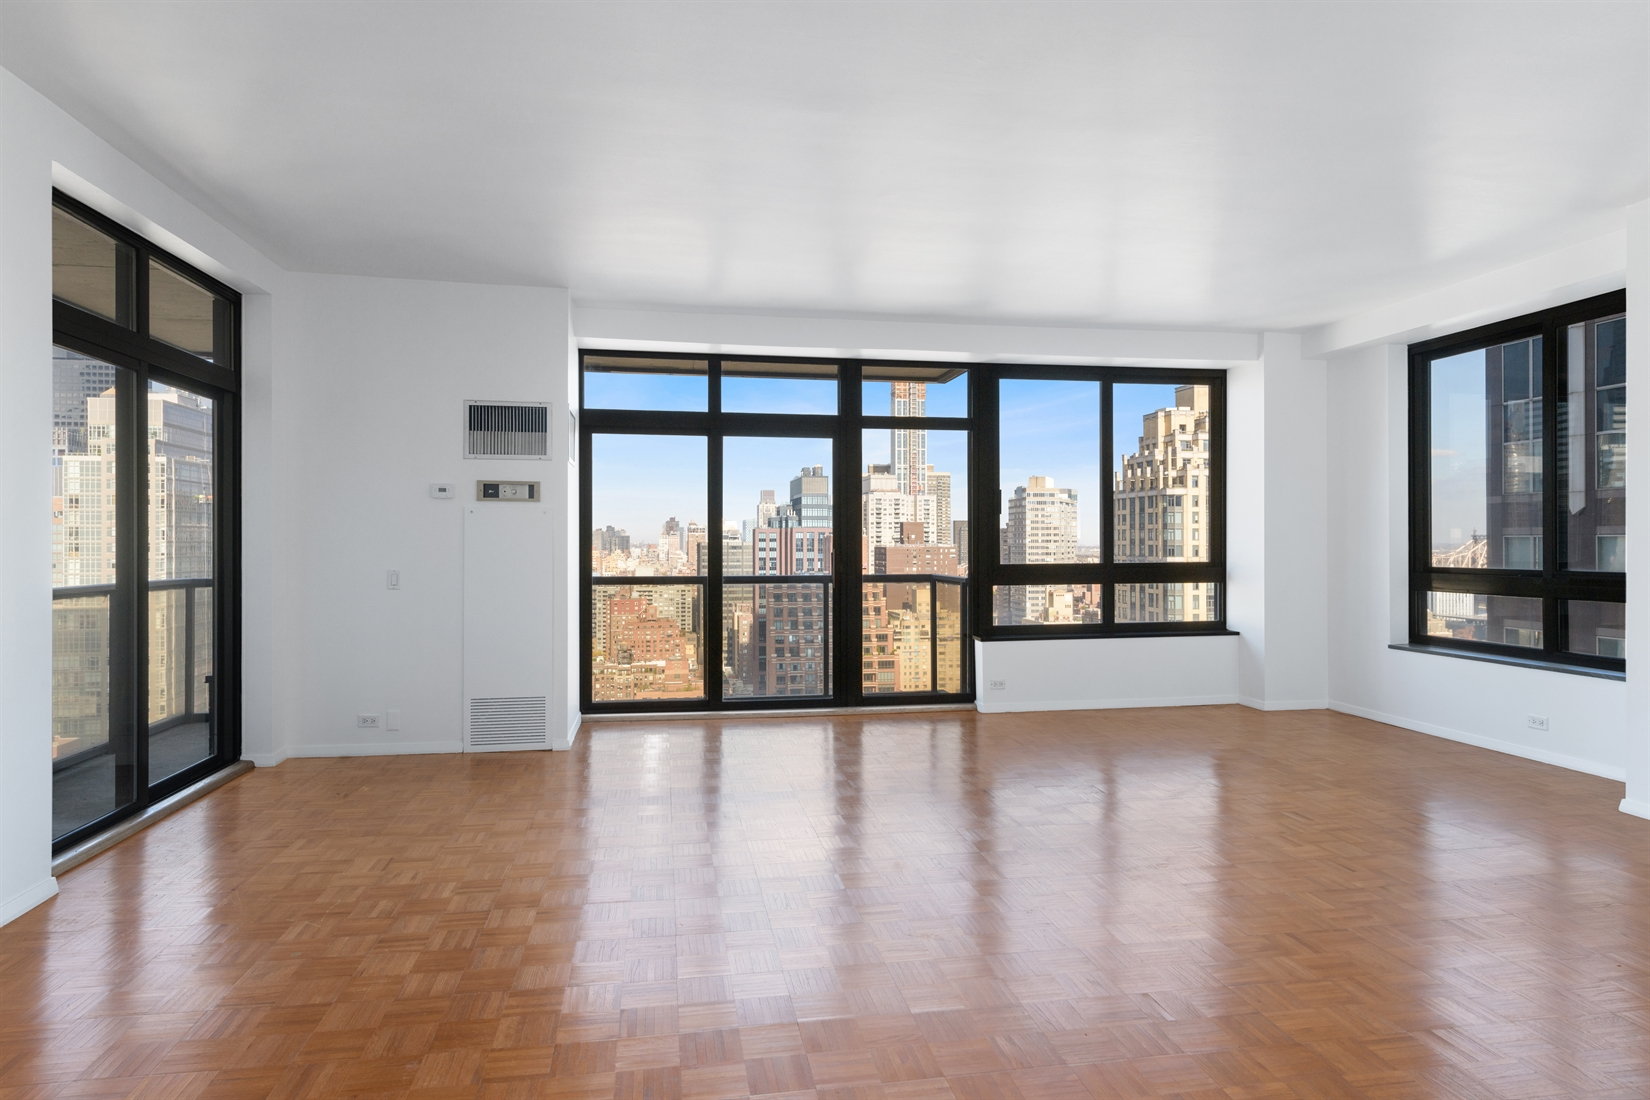 Largest 1 bedroom, 1.5 bathroom layout high on the 32nd floor boasting spectacular city views now available for rent at 100 United Nations Plaza, one of Midtown East's premier white-glove condominiums.Stepping in to this north-facing apartment measuring approximately 1,242 square feet you will be immediately drawn to the generous open living and dining room showcasing idyllic skyline views from its floor-to-ceiling windows with north, west and east exposures. An ideal space for entertaining with the adjacent galley kitchen, you and your guests can also take in the sights from the 105 square foot (approximately) wrap-around balcony. The galley kitchen has a Brand New Liebherr refrigerator, full-size dishwasher, gas range and large pantry closet. Down the hallway you will find the incredibly spacious north-facing bedroom suite boasting an en suite windowed 5-piece marble bathroom, separate dressing area with an additional vanity and sink, a walk-in closet plus 4 substantial floor-to-ceiling closets.Additional features of this incredible apartment include 9 foot ceilings, central heat and A/C as well as a windowed marble powder room.Located on East 48th Street and First Avenue, 100 United Nations Plaza is a white-glove, full service condominium in Manhattan's Turtle Bay neighborhood. Greeting residents with beautifully landscaped gardens and waterfalls, this impeccably run building offers a 24-hour doorman, concierge and valet, on-site management office, renovated lobby and residents' lounge, common laundry room, fitness center and direct access to an attended parking garage. Conveniently located to transportation and many great shops and restaurants.